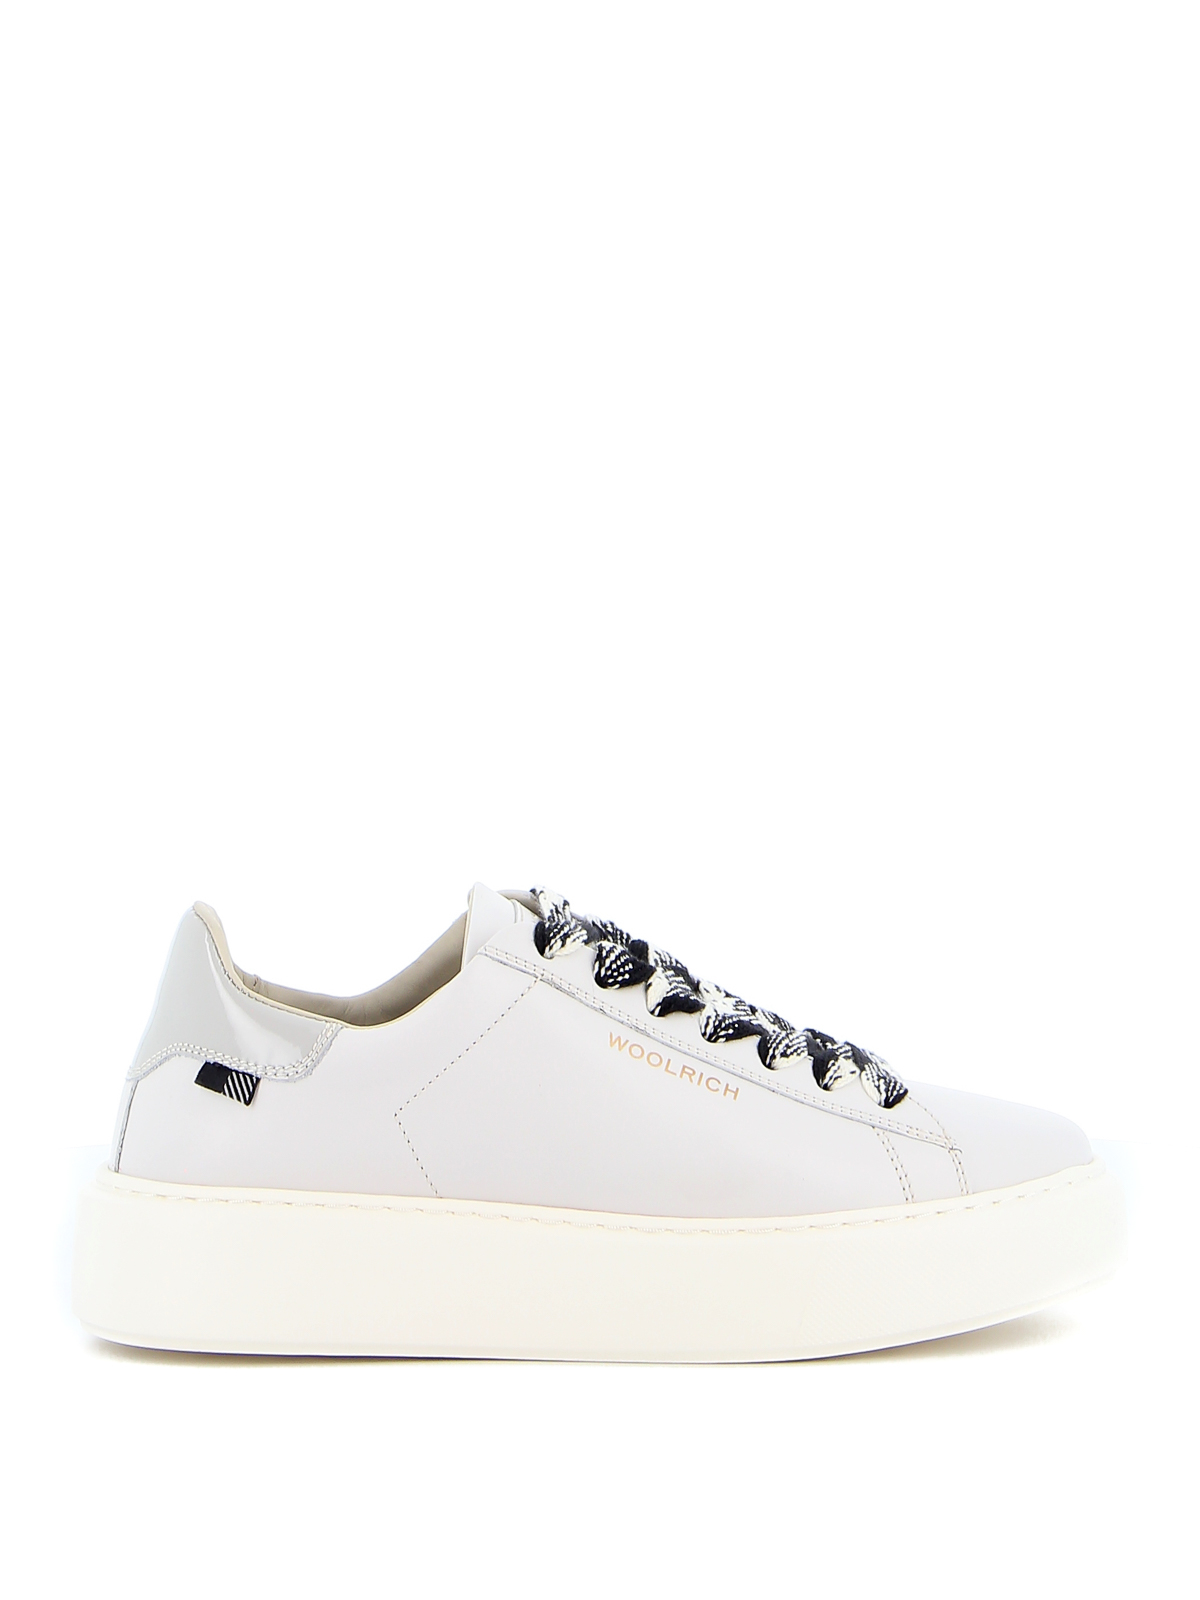 Woolrich Leathers LEATHER SNEAKERS